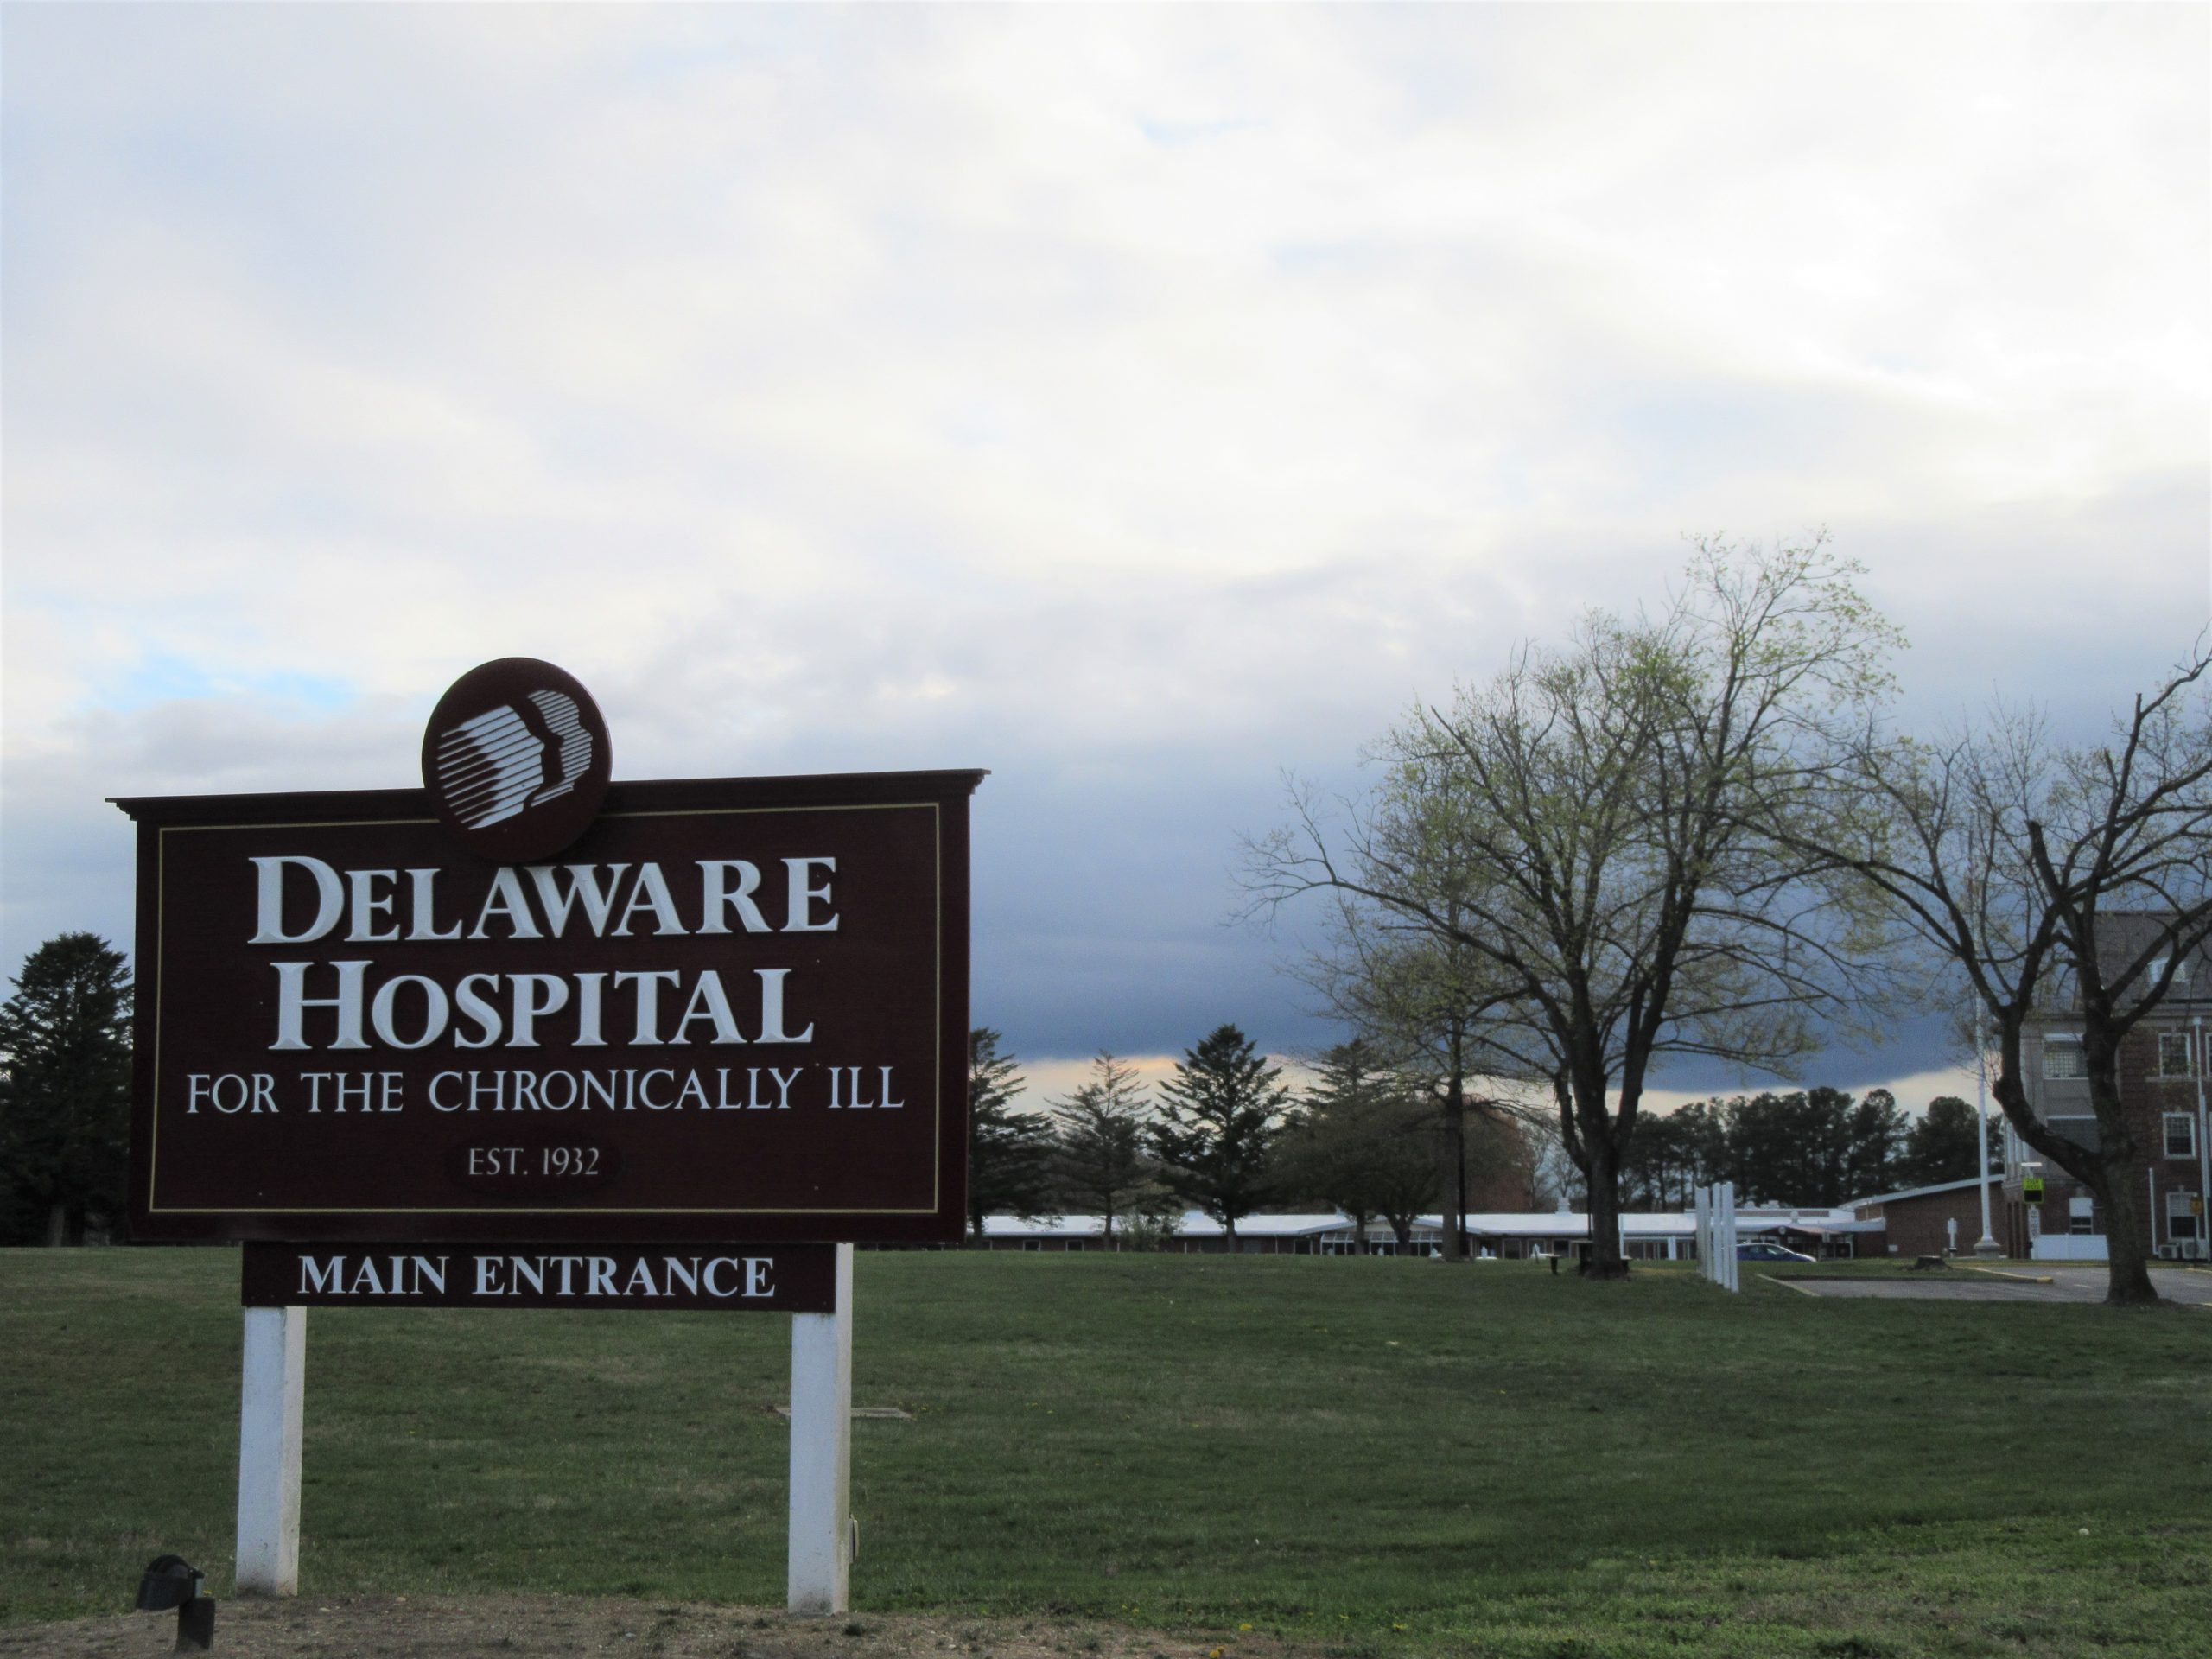 Sign for the main entrance of the Delaware Hospital for the Chronically Ill